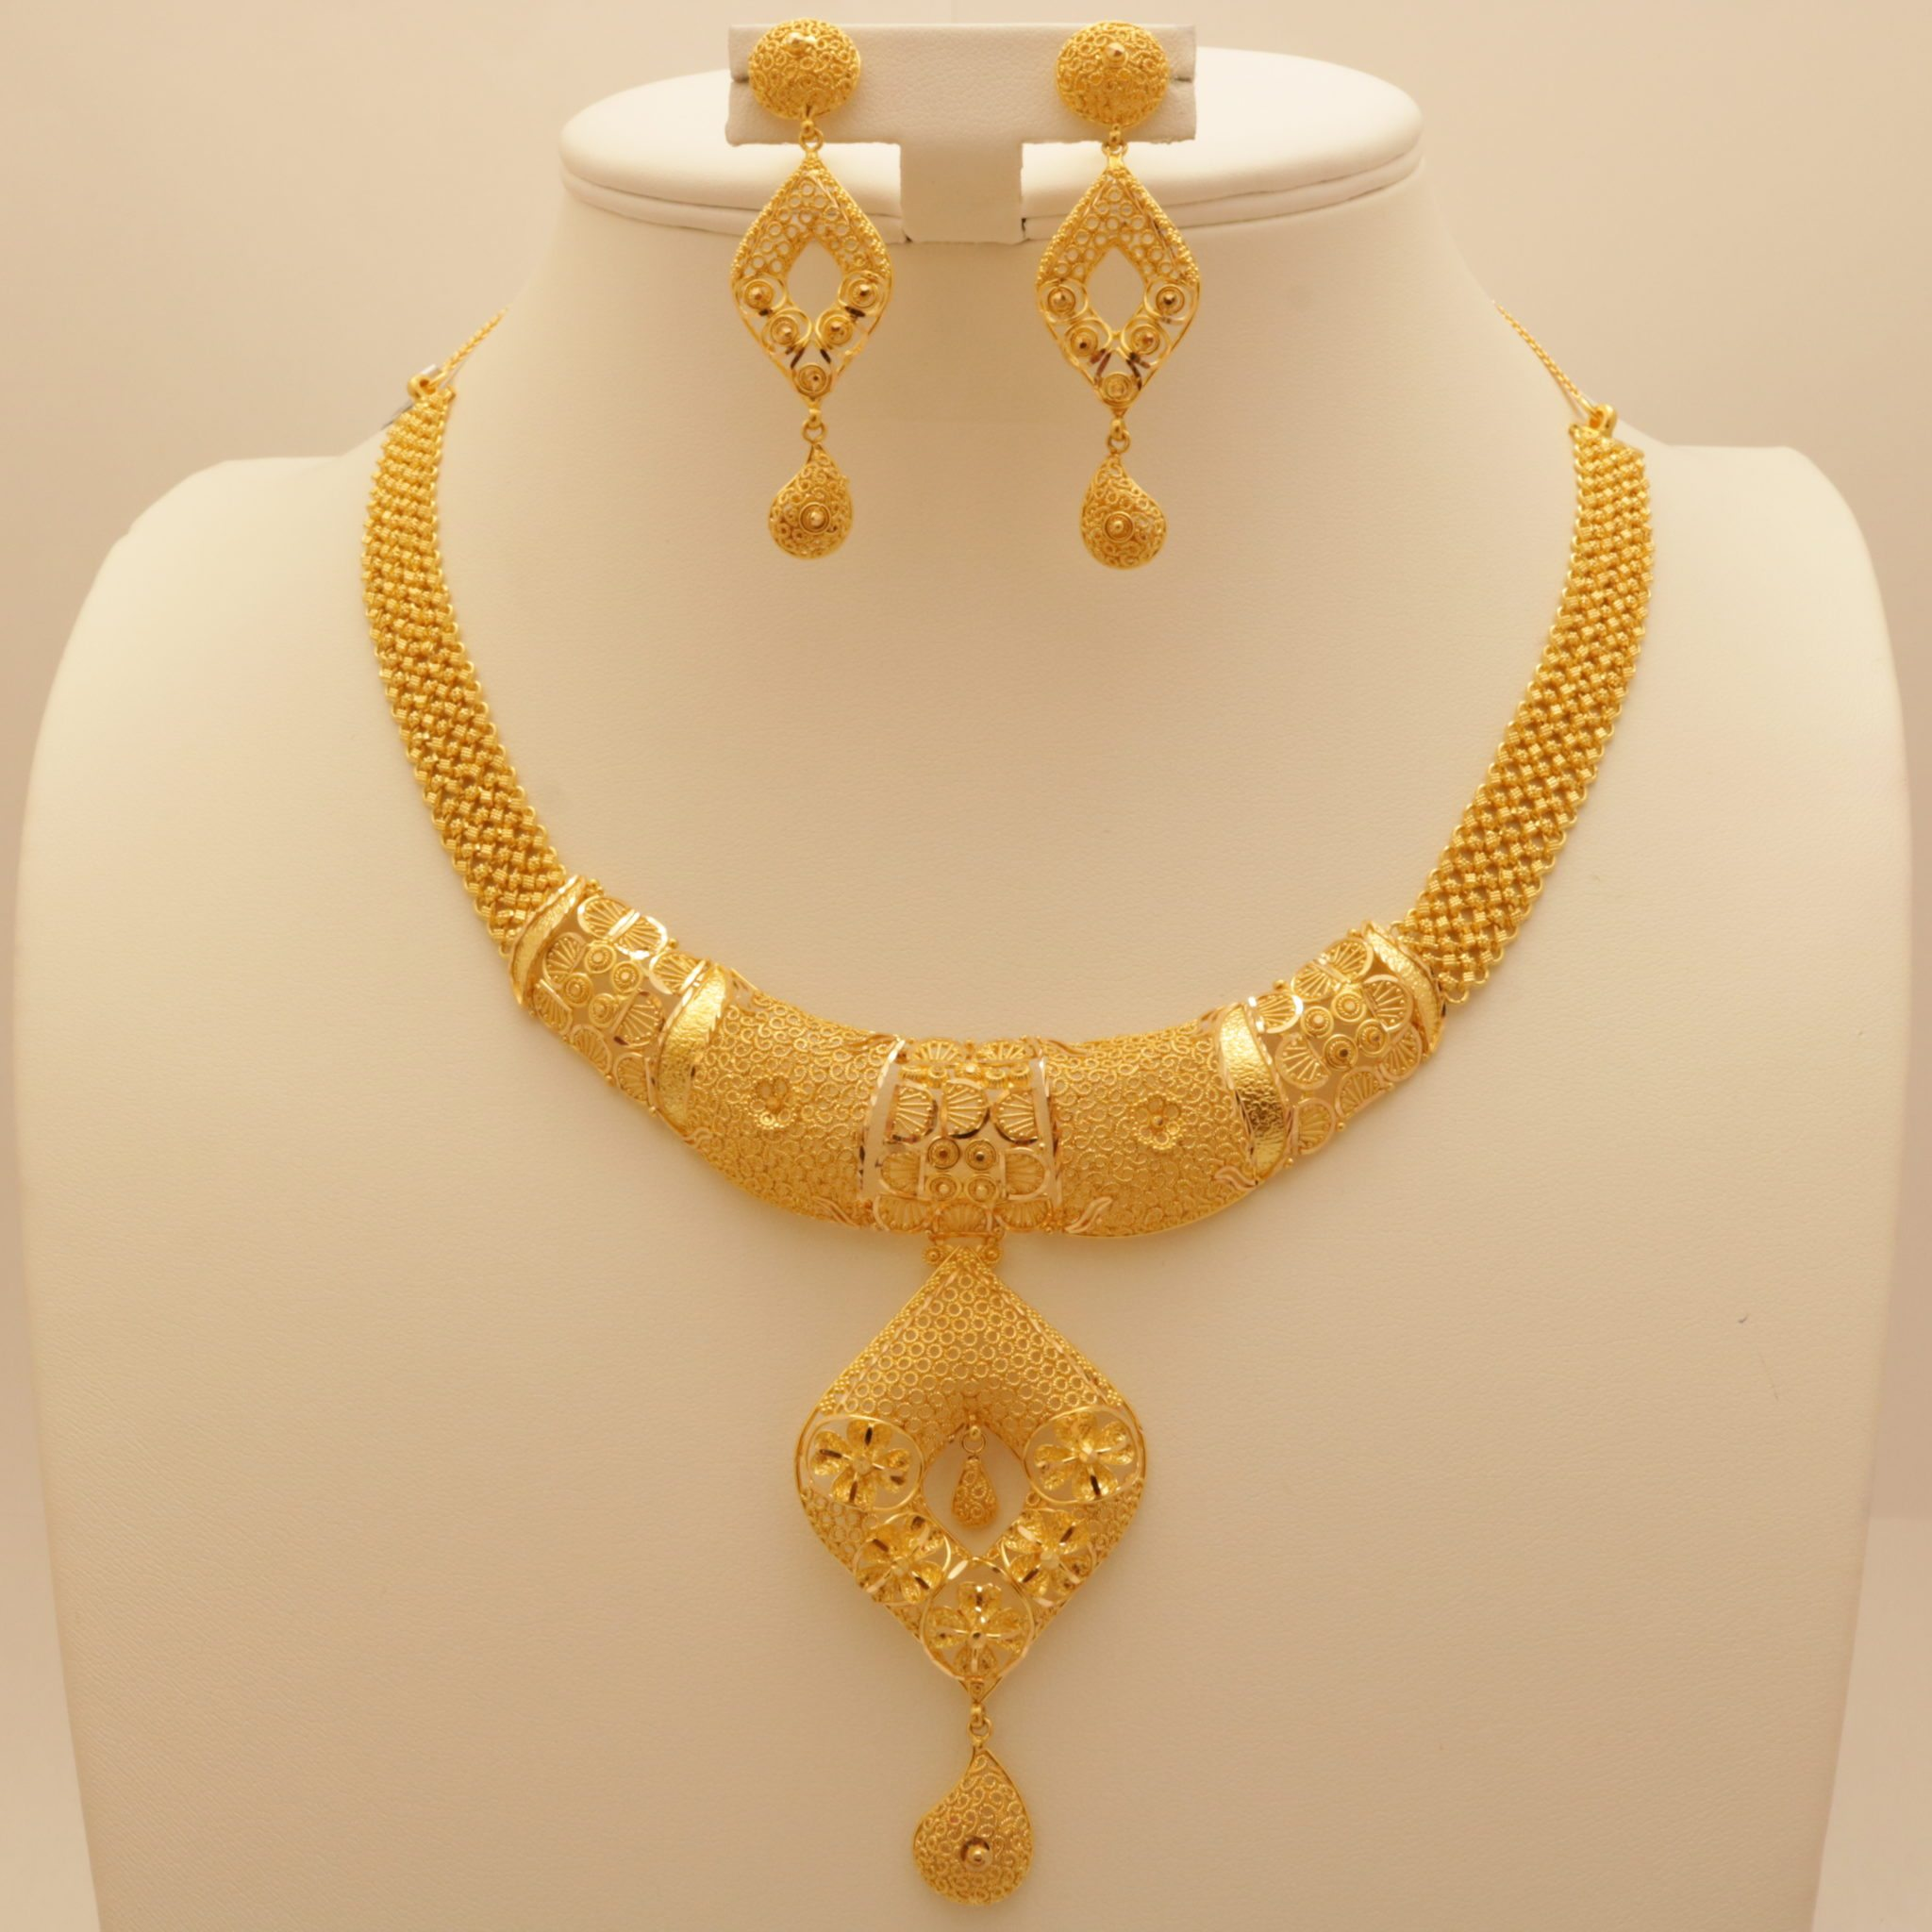 gold home keid joomay shop necklace jewelry